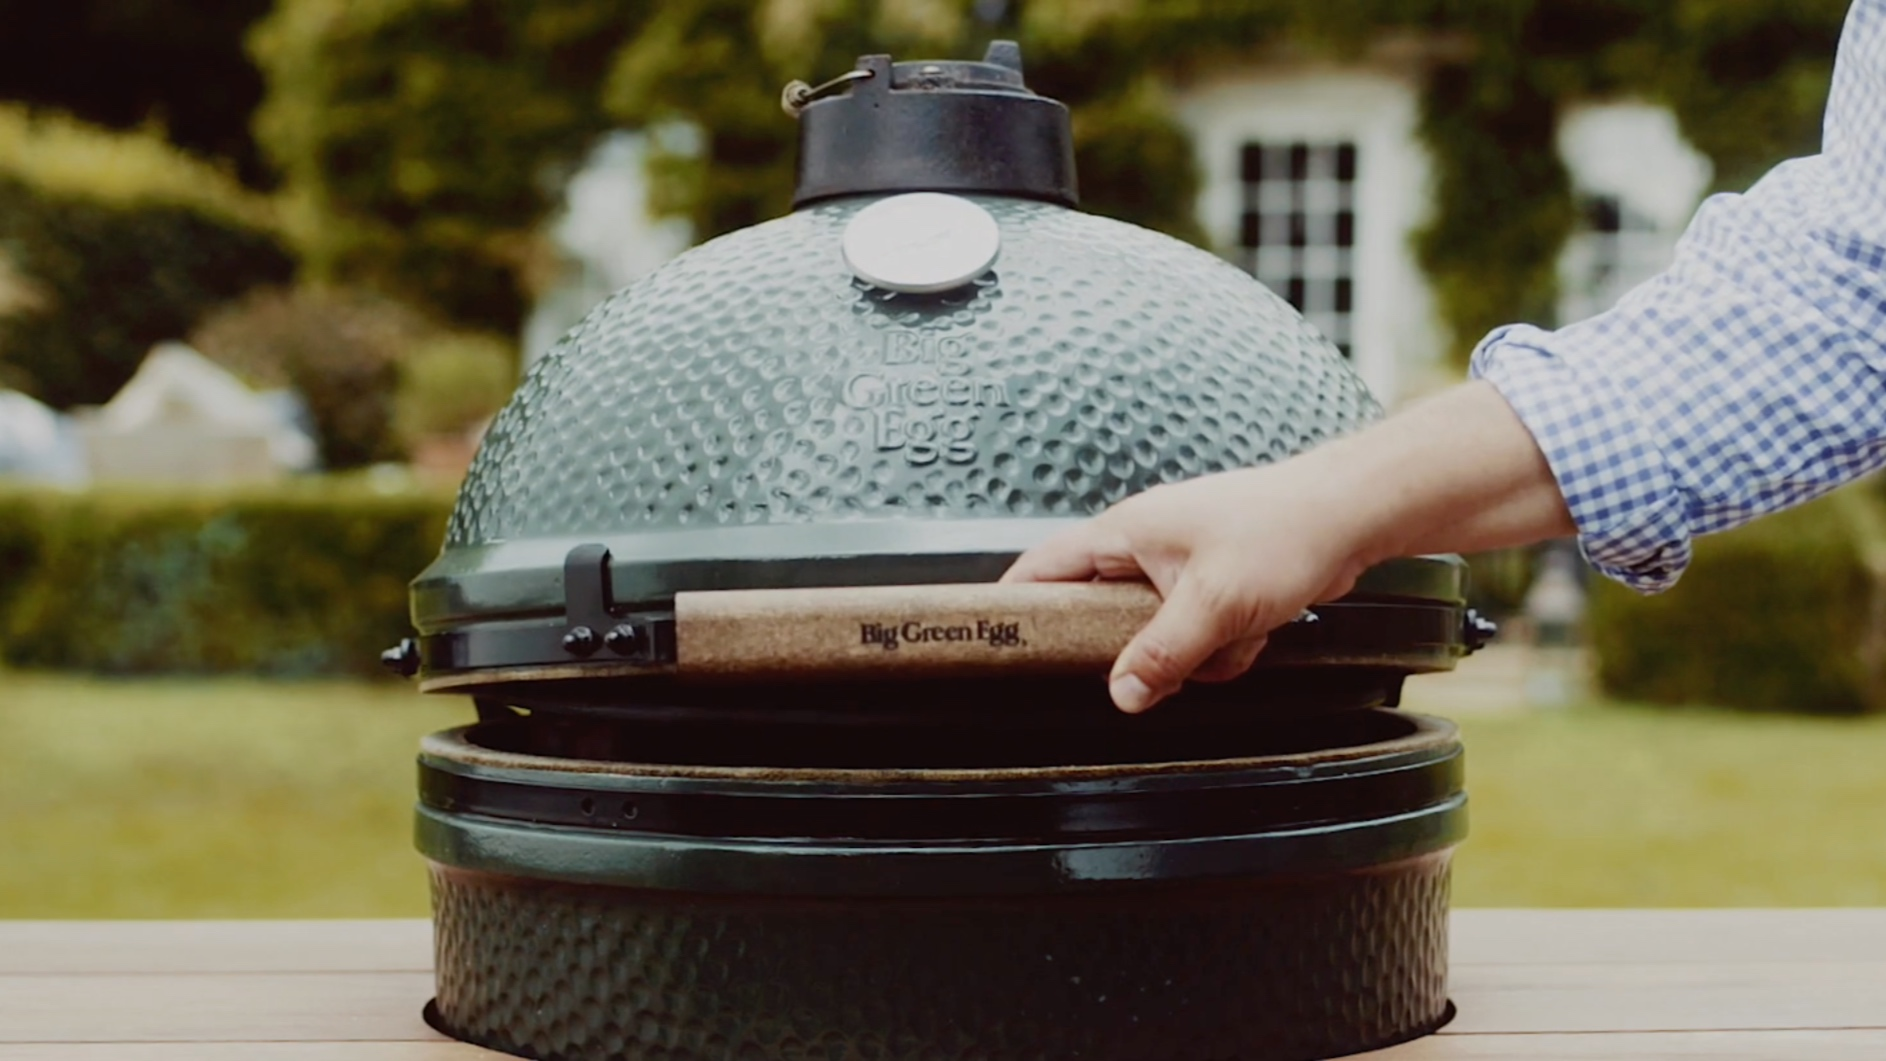 Giveaways - All dads will have a chance to win a Big Green Egg. We will give away a grill at each campus after every service.To register and be eligible to win, dads must be in attendance.